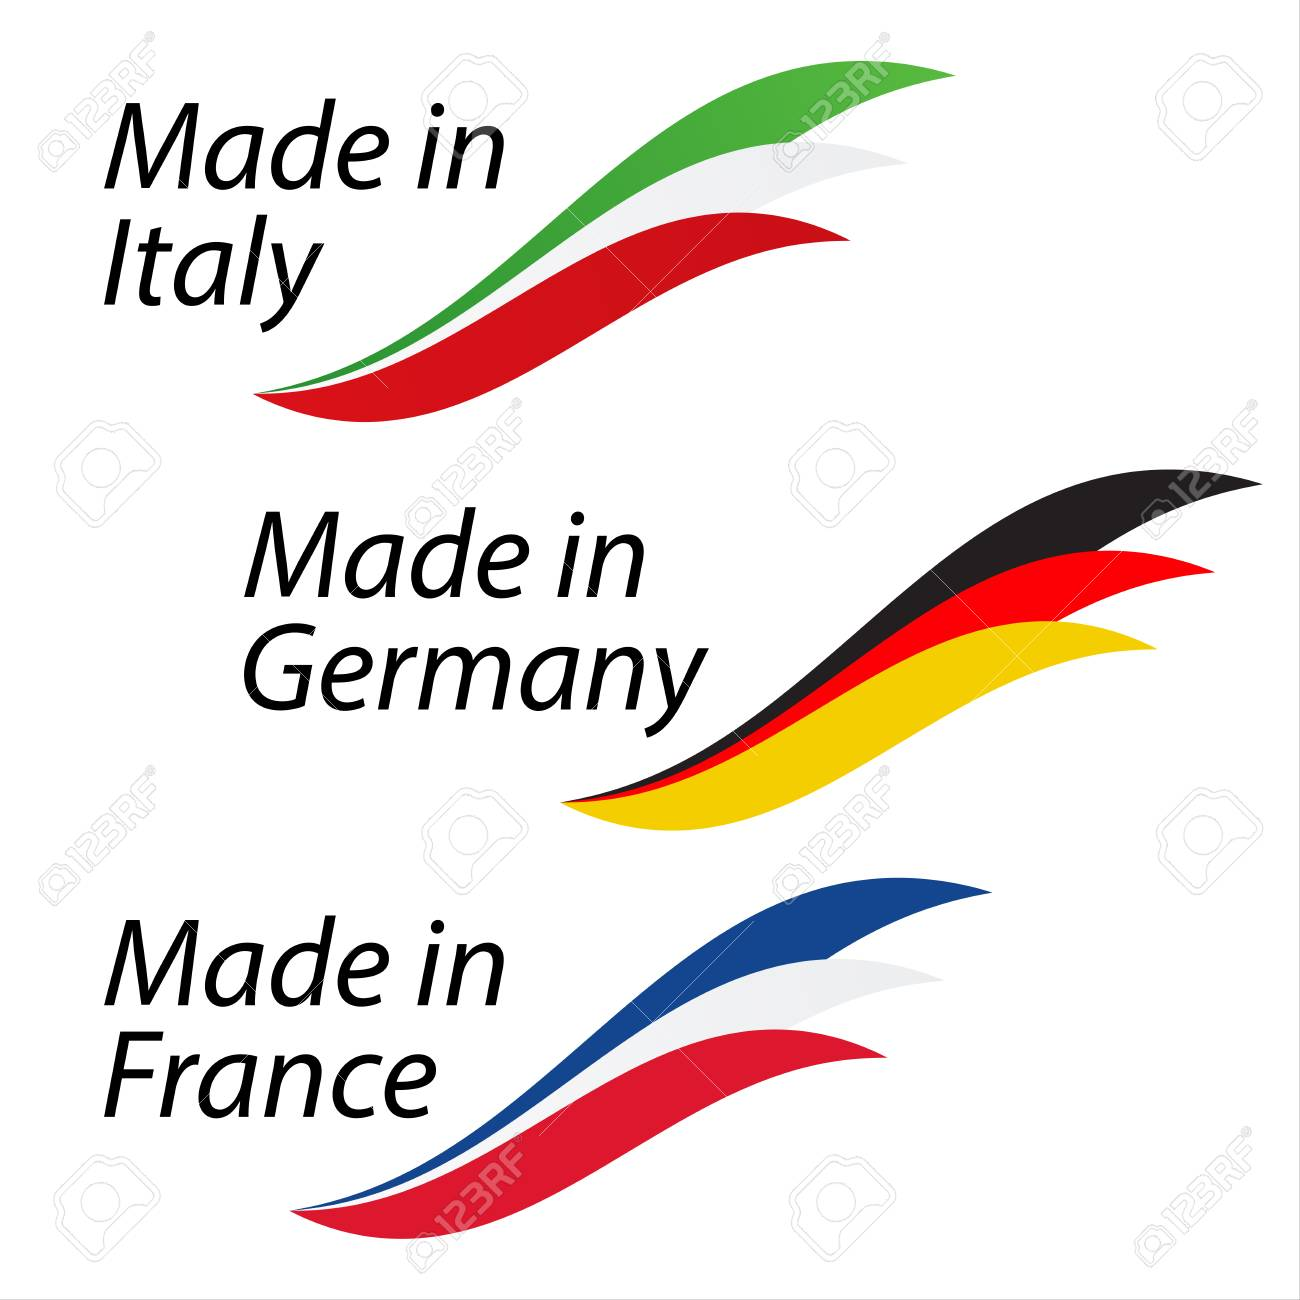 Simple Logos Made In Italy Made In Germany And Made In France